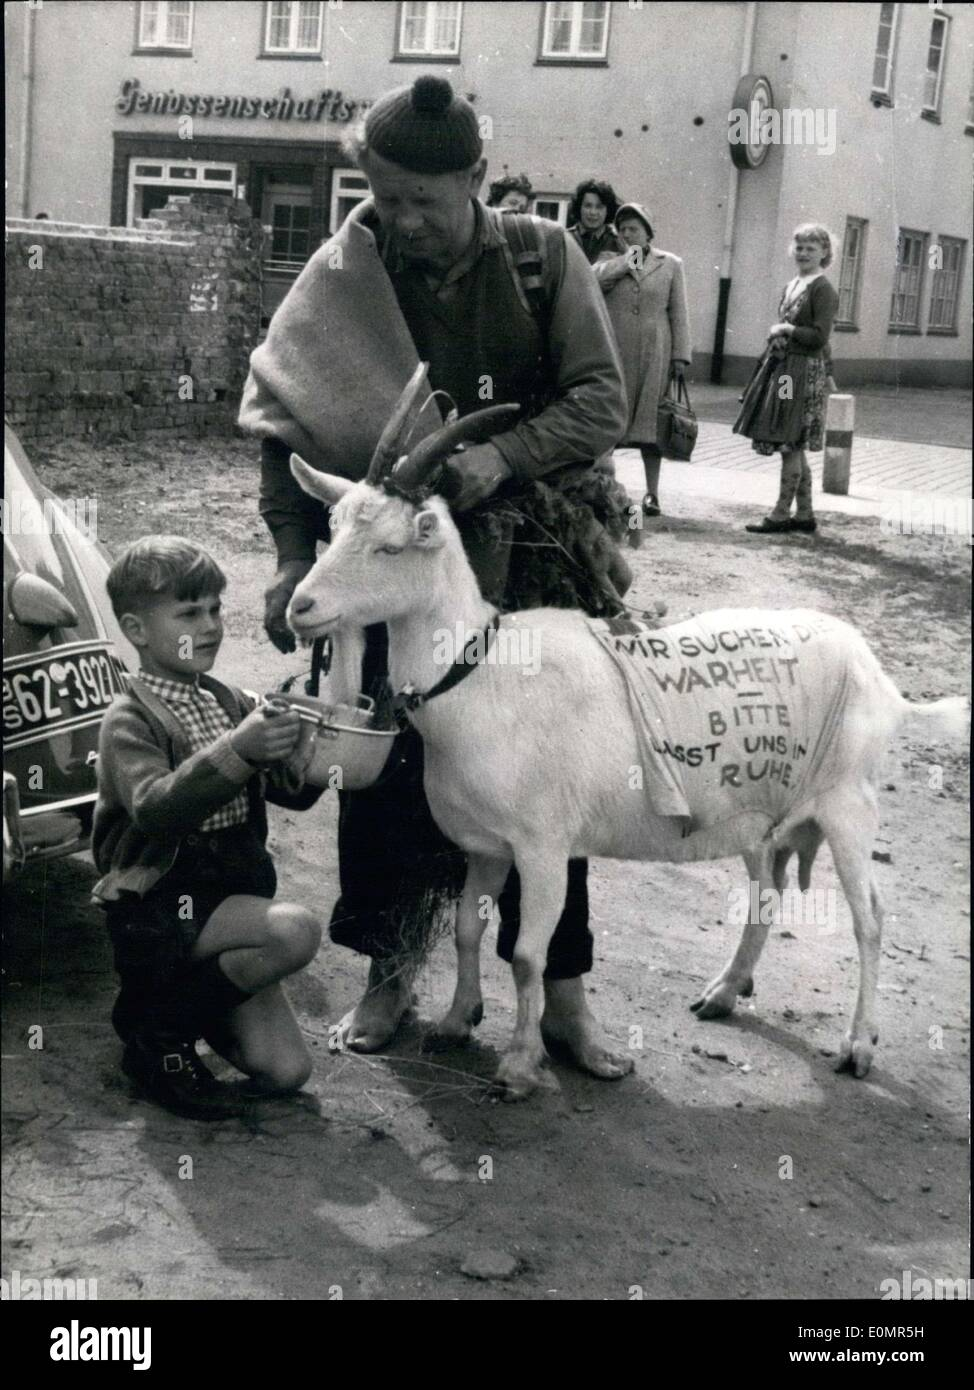 May 15, 1956 - Danish instructor Tage Lillienstrand was on a pilgrimage to Rome, barefoot, in order to give a gift to his beloved Ingrid Bergman. He is pictured in Neumuenster/Holstein. - Stock Image